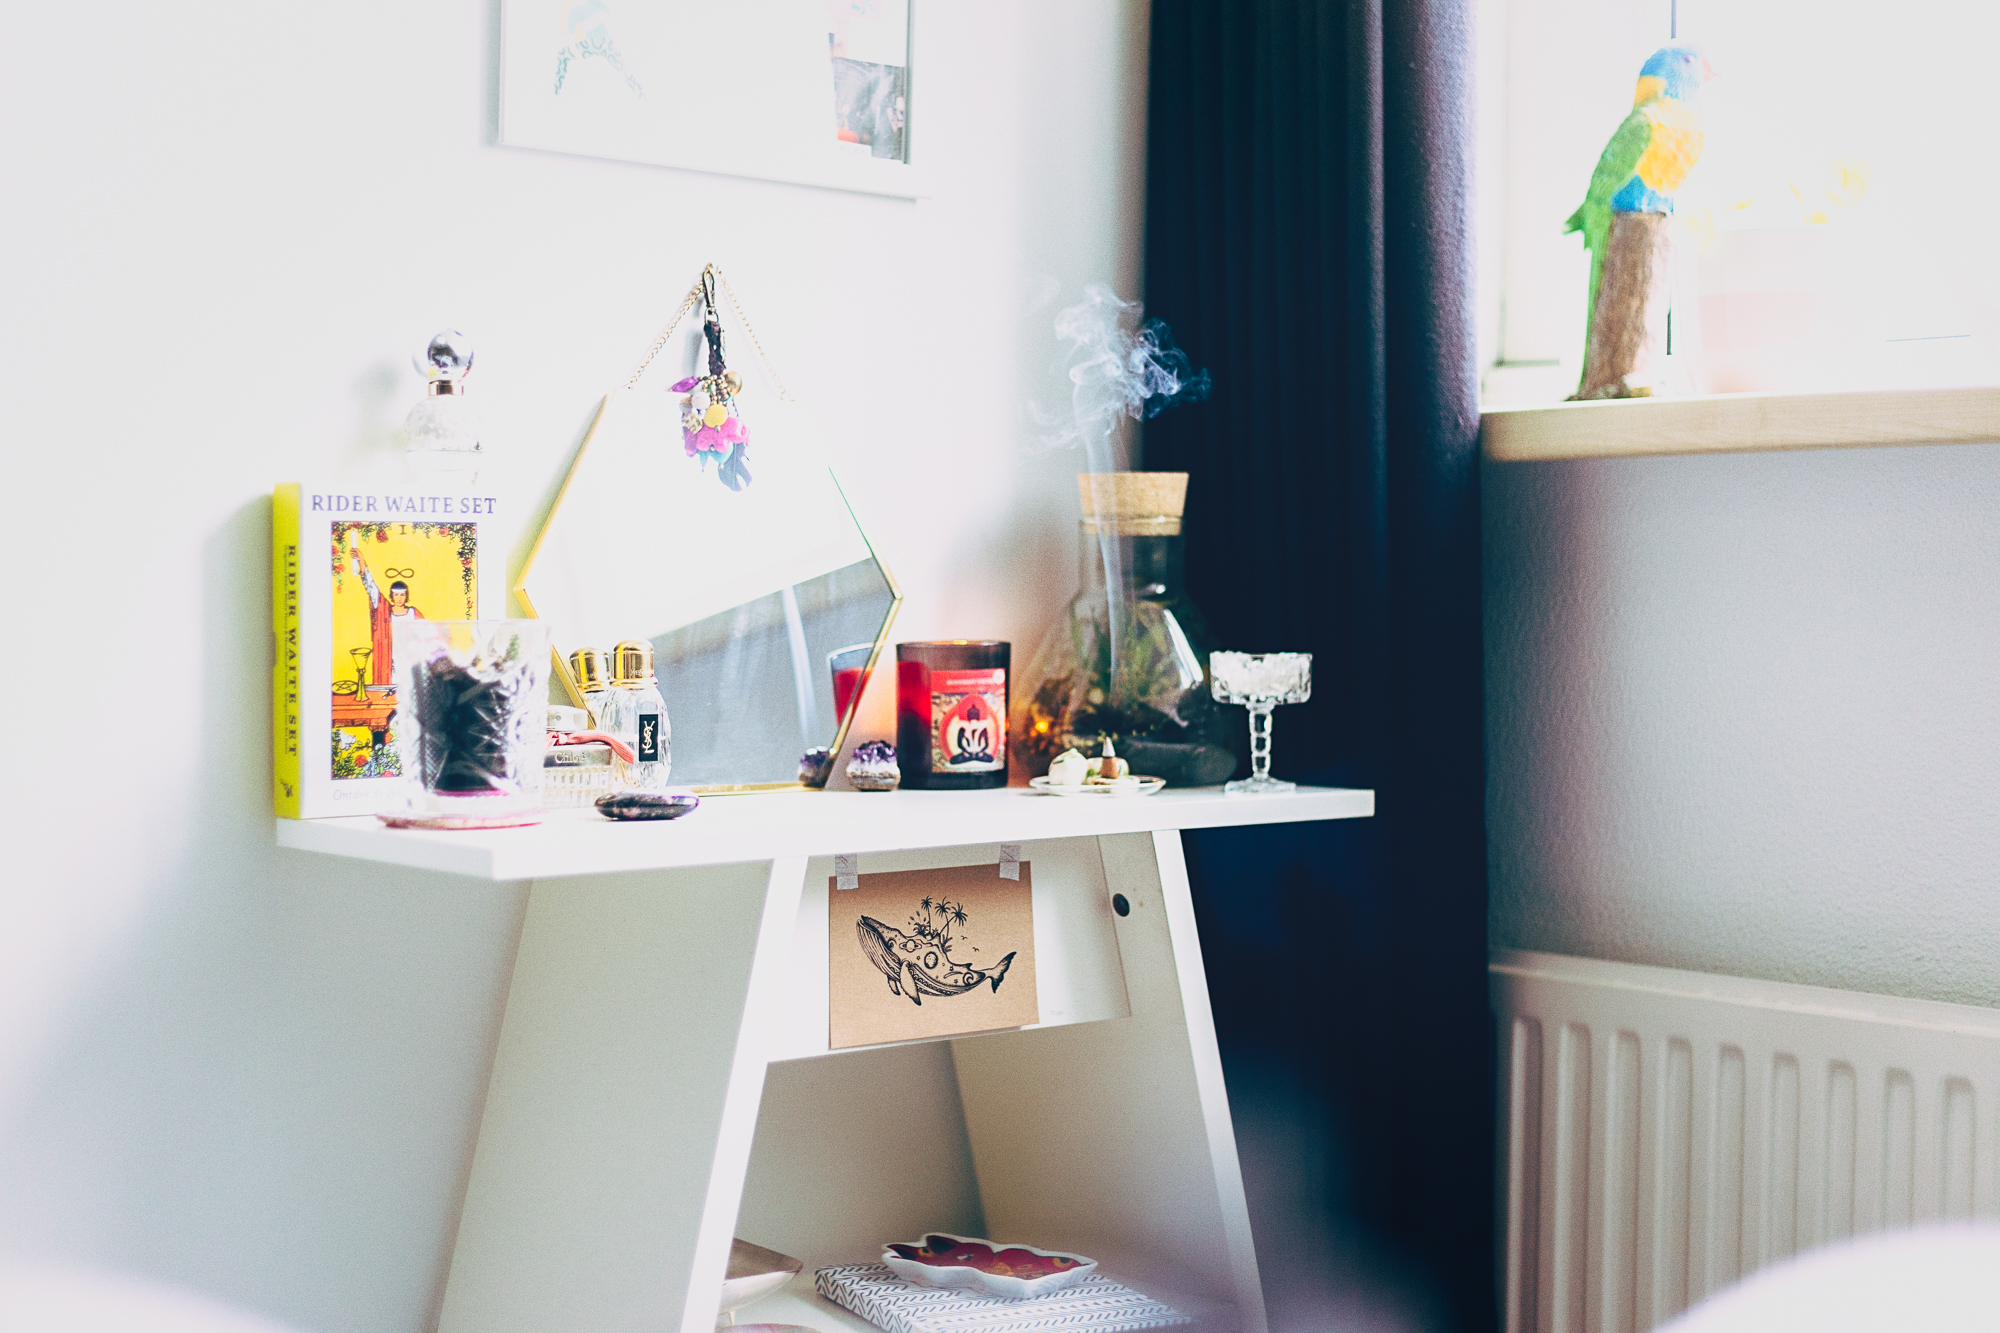 Zen Den of Landa Penders - inspiration for meditation routines in the morning - crystals, candles, perfumes, abundance, love, tarot